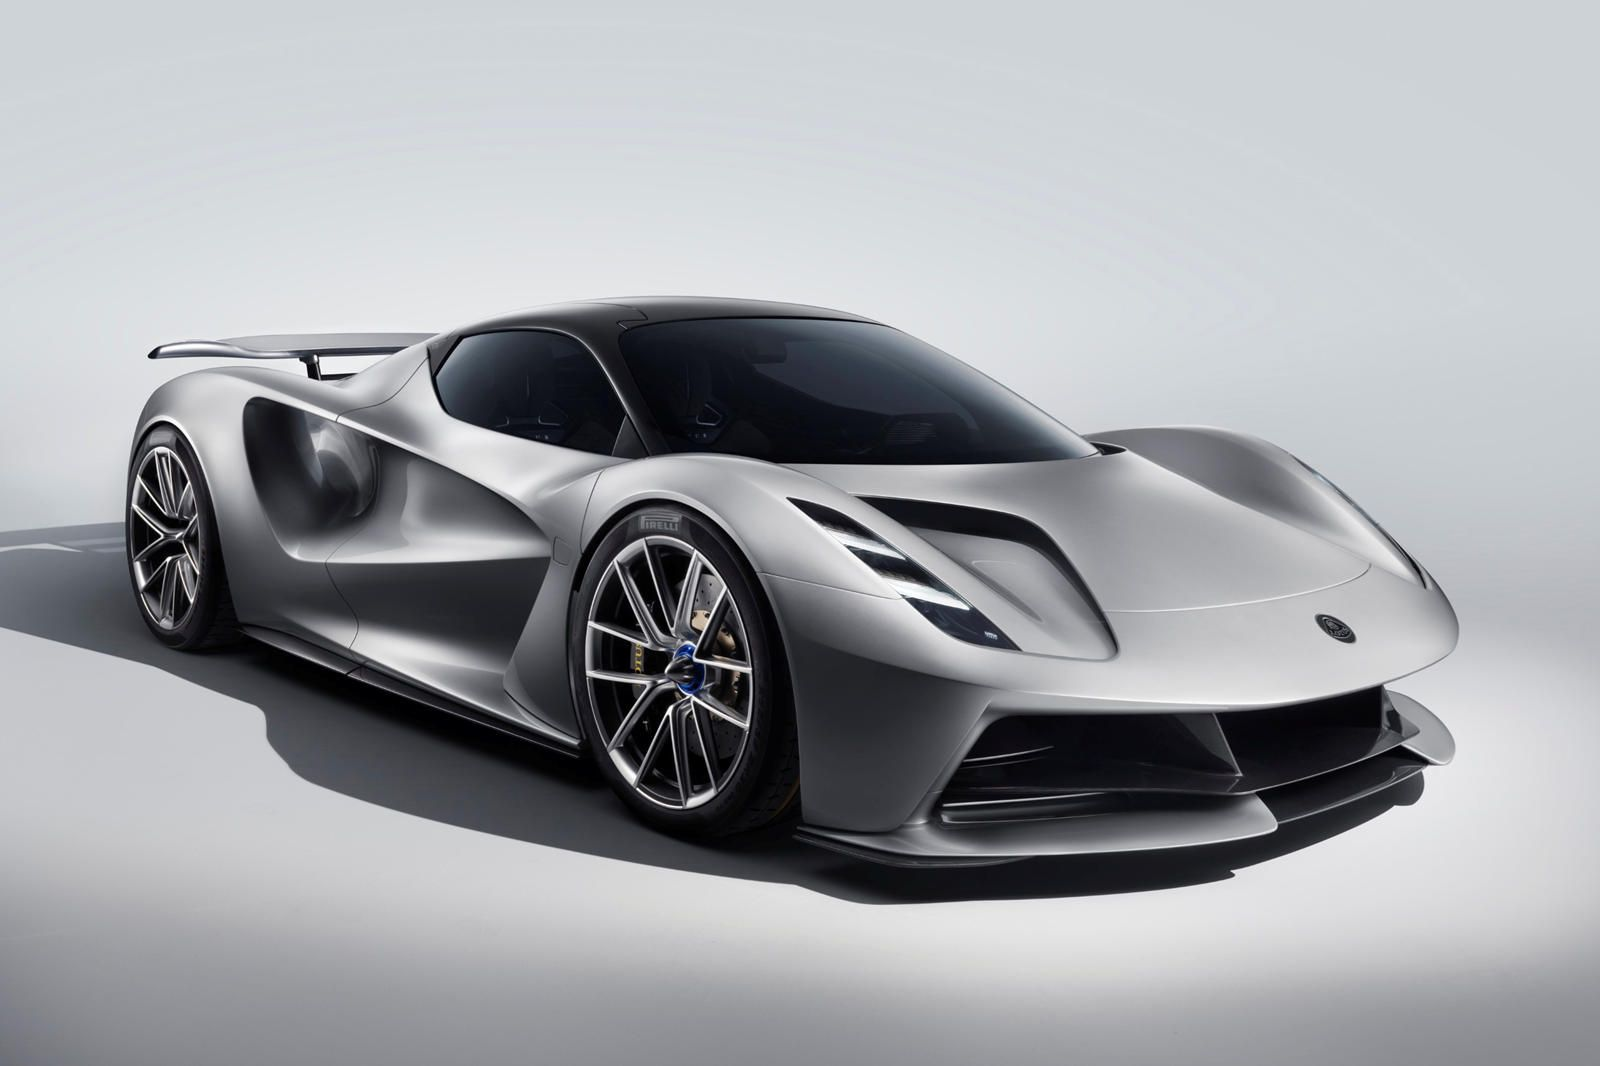 Get Excited For New Lotus Sports Car More Details Have Arrived In 2020 Lotus Sports Car Lotus Car New Cars